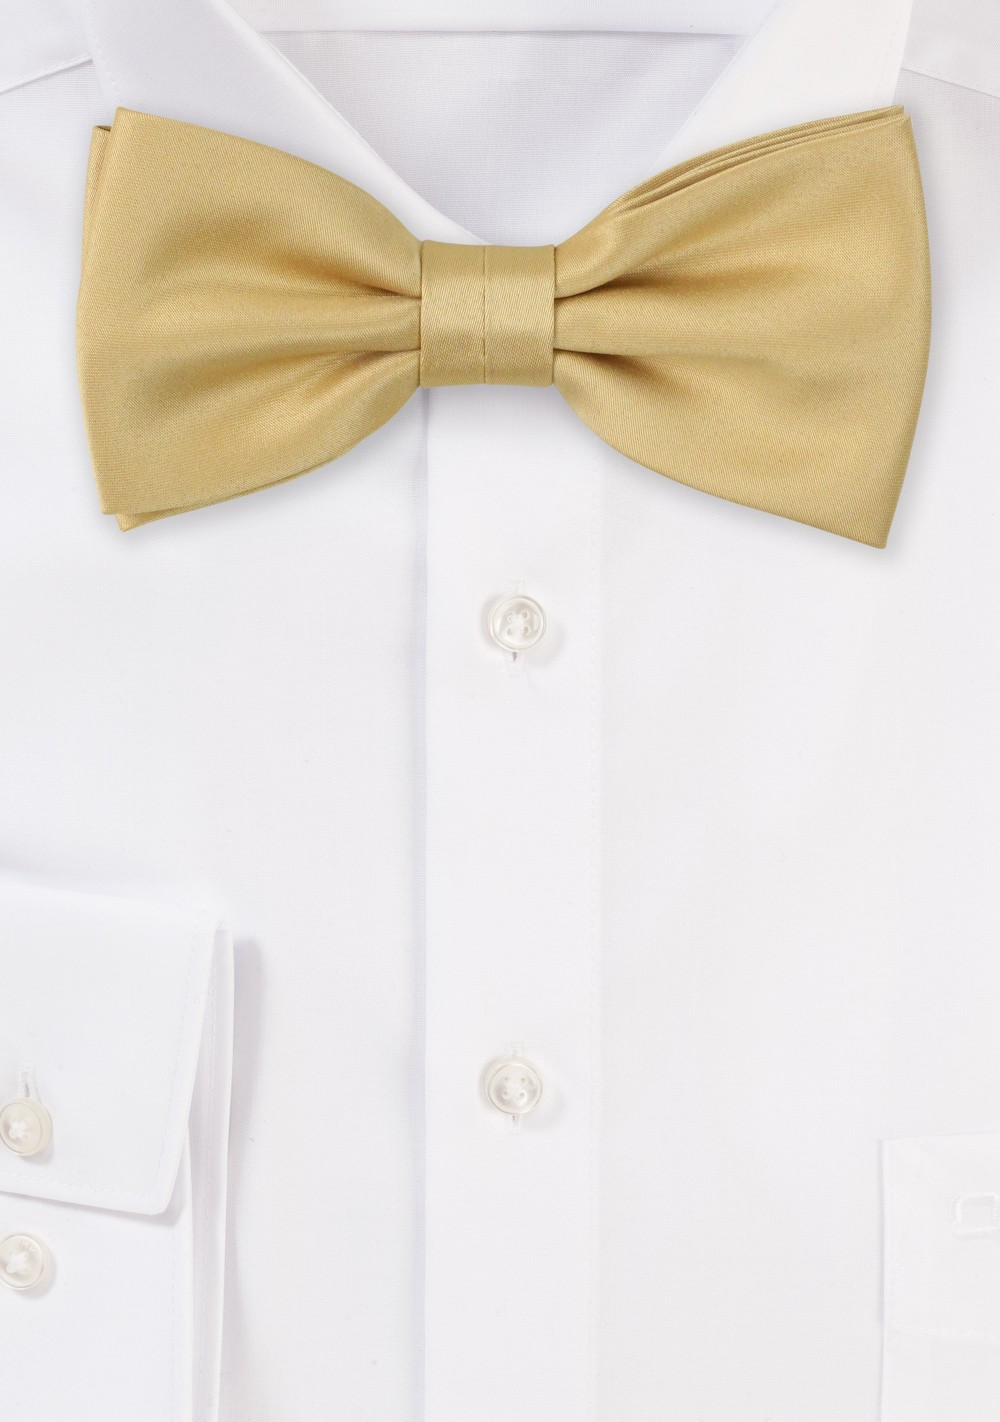 Satin Bow Tie in Golden Color